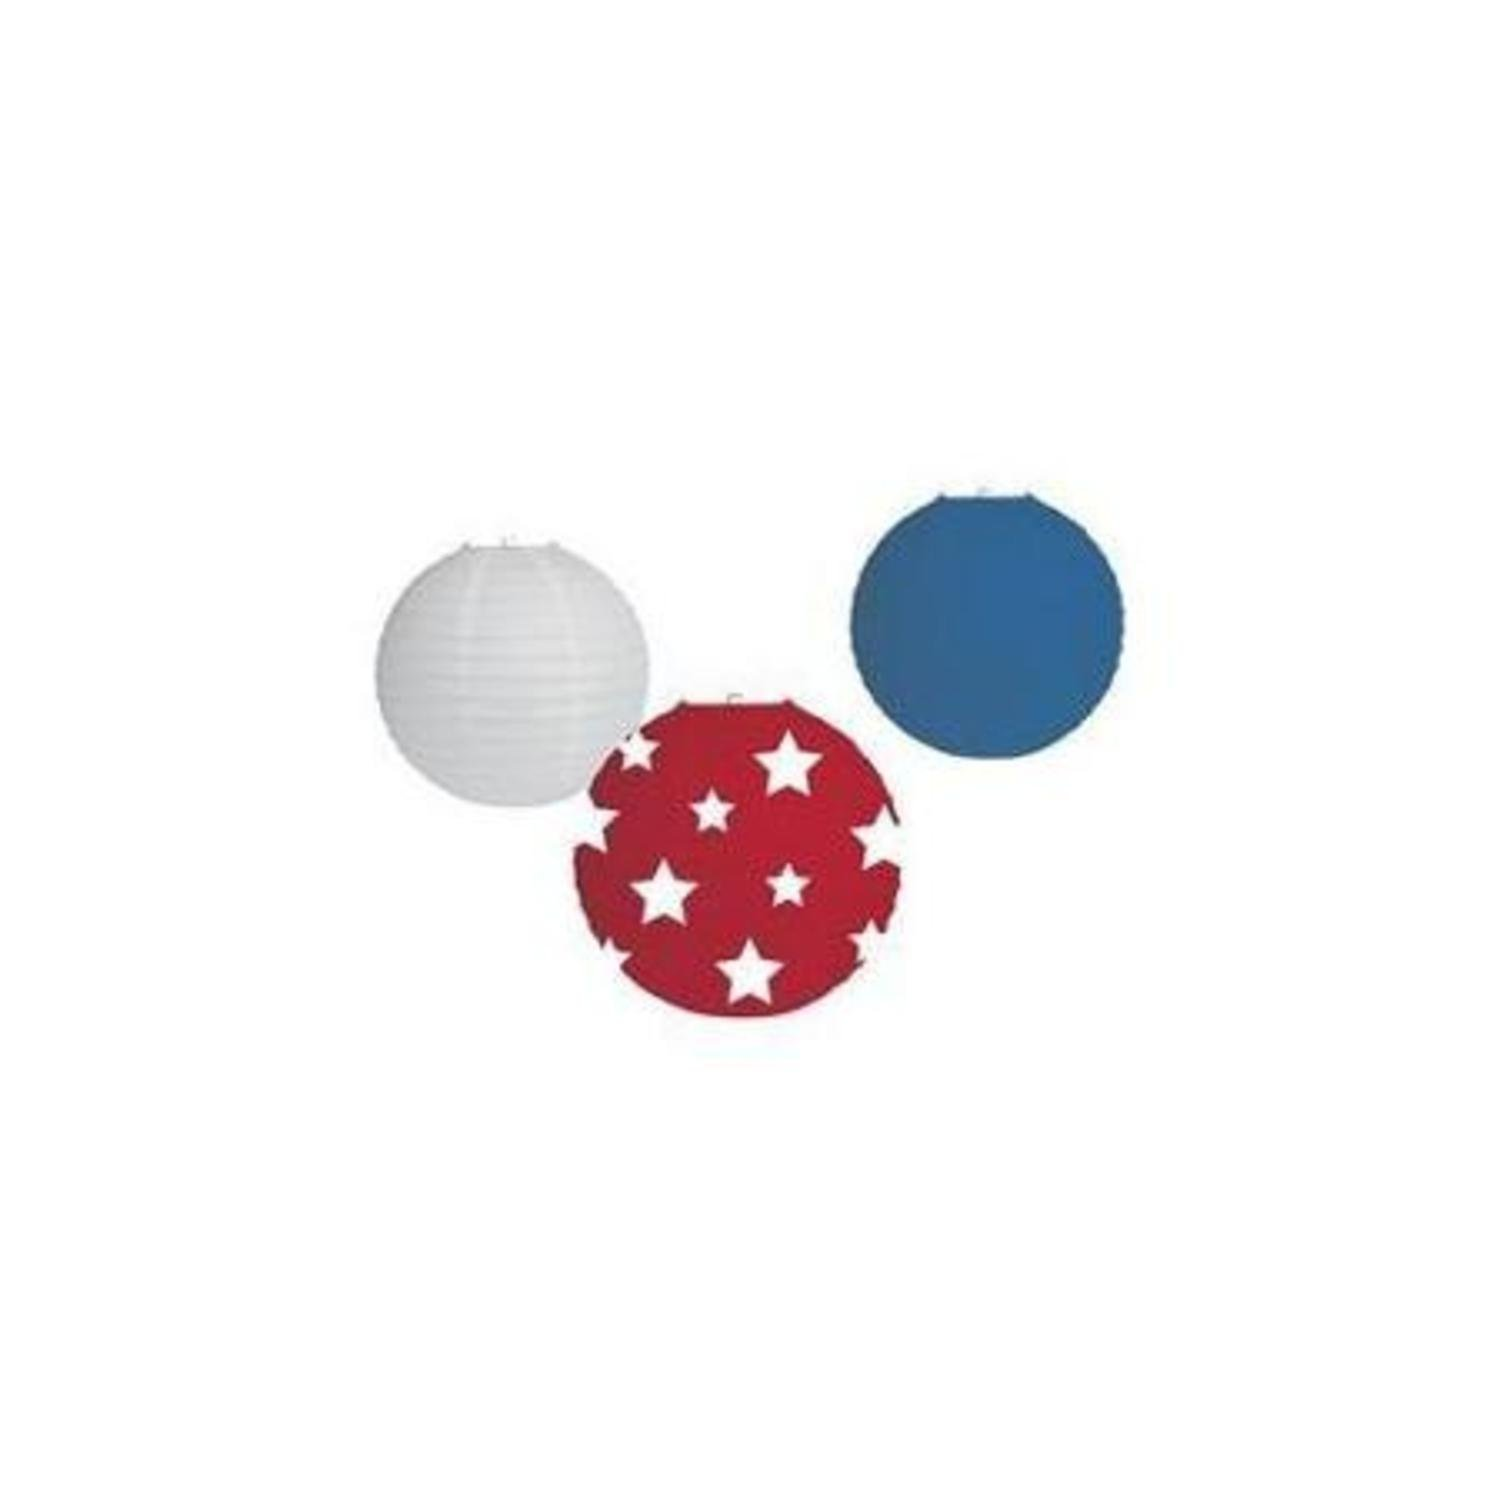 Pack of 36 Patriotic Red White and Blue Star Hanging Paper Lantern Memorial Day and Fourth of July Party Decorations